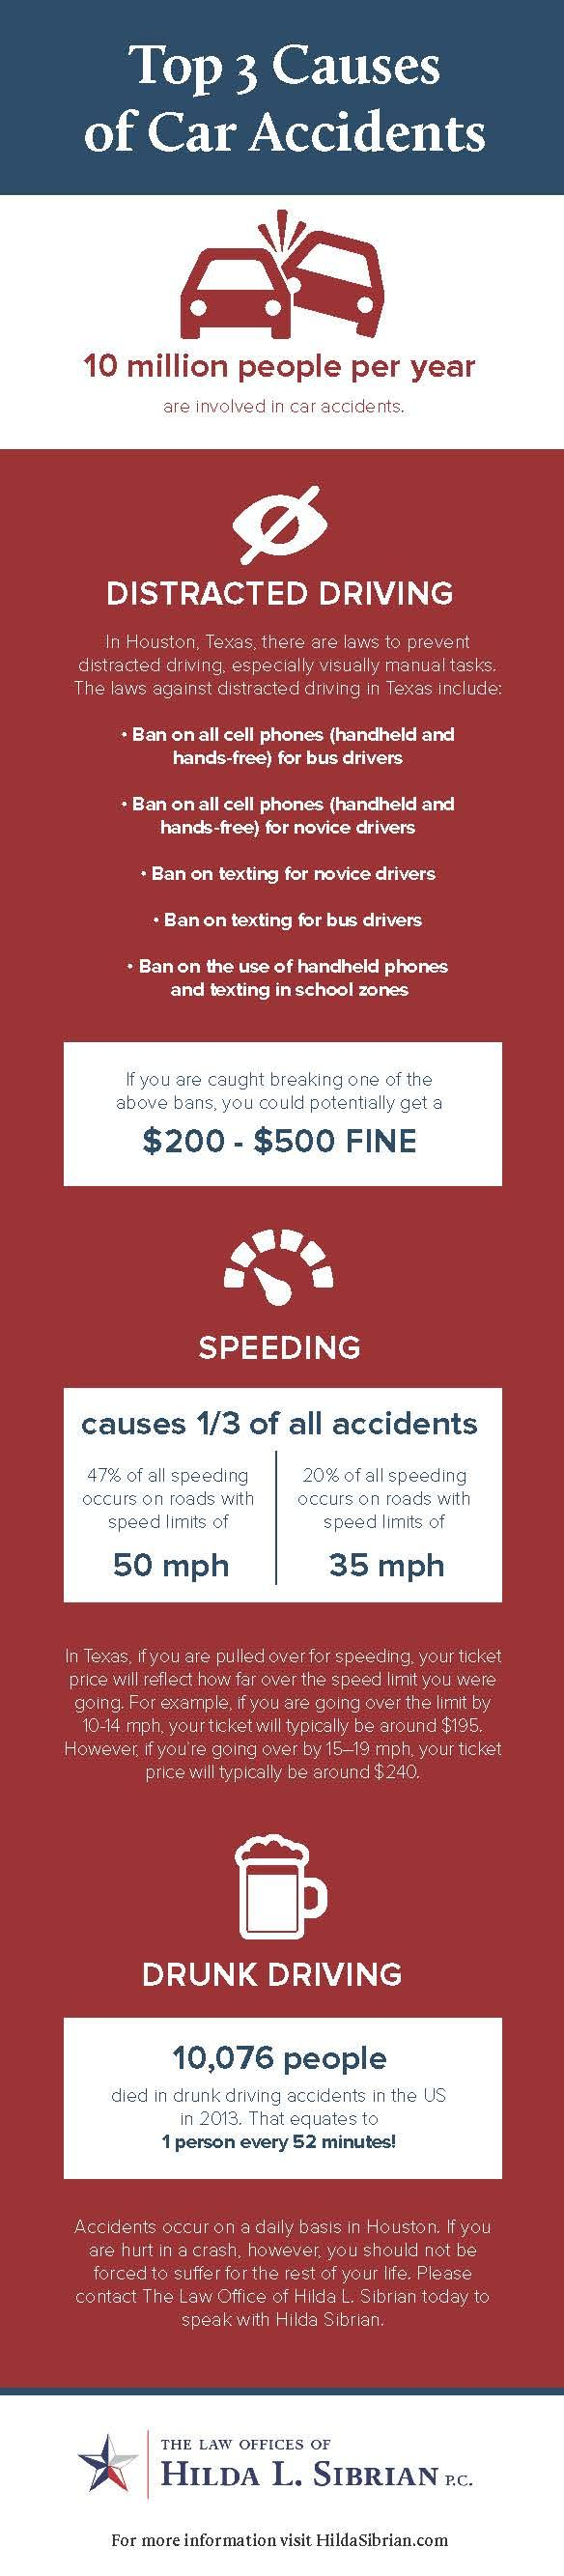 3 Main Causes of Car Accidents in